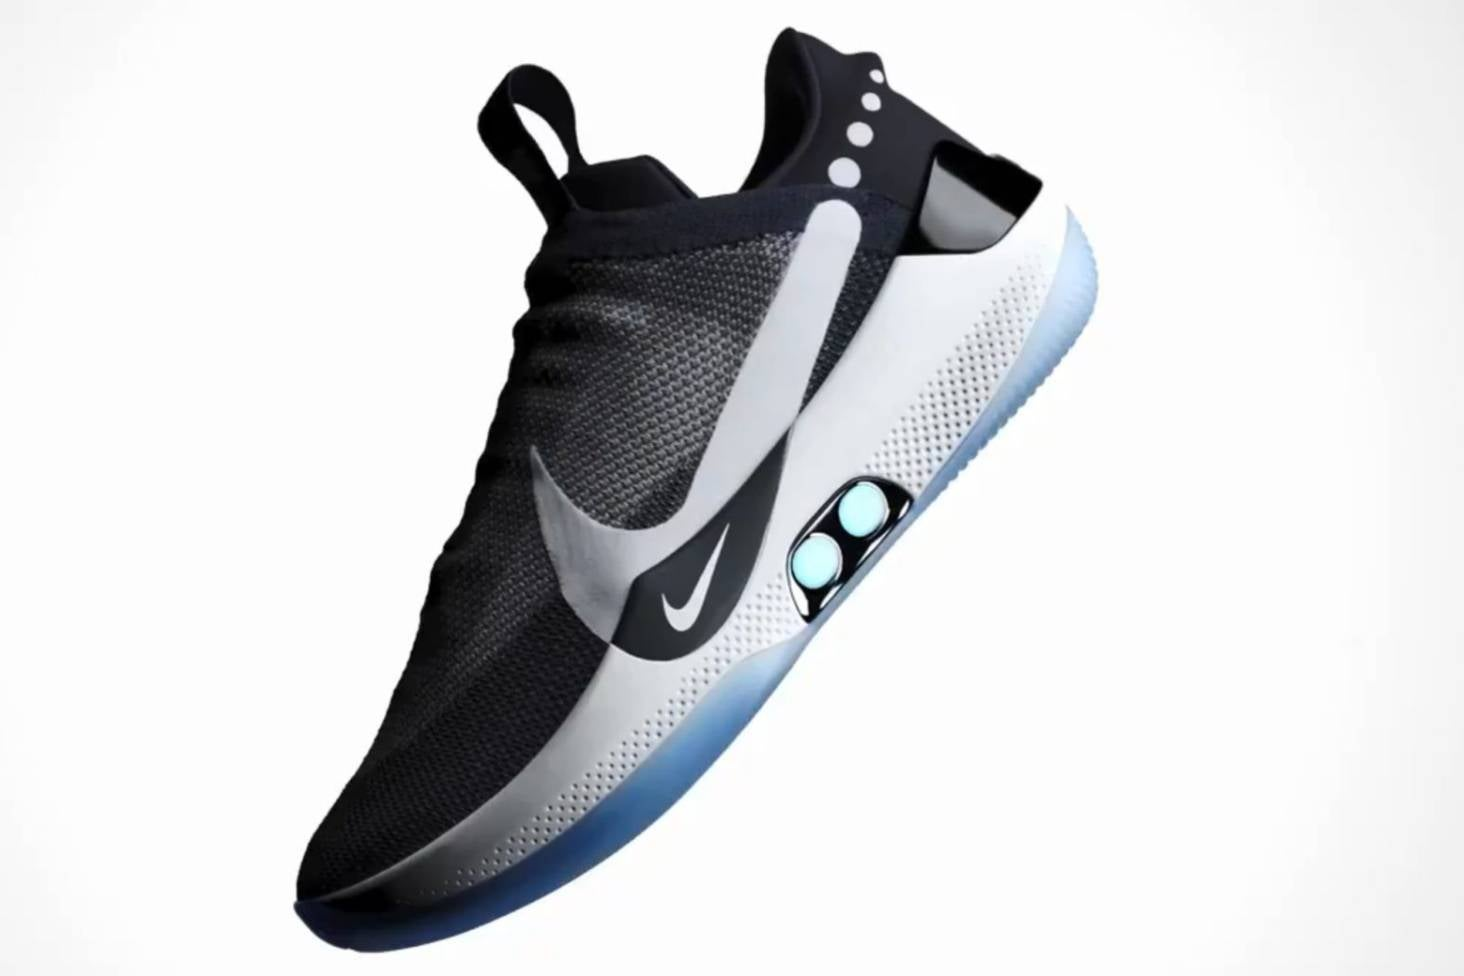 official photos 13198 0c16b Nike reveals self-lacing sneakers you can control with your smartphone    Stuff.co.nz